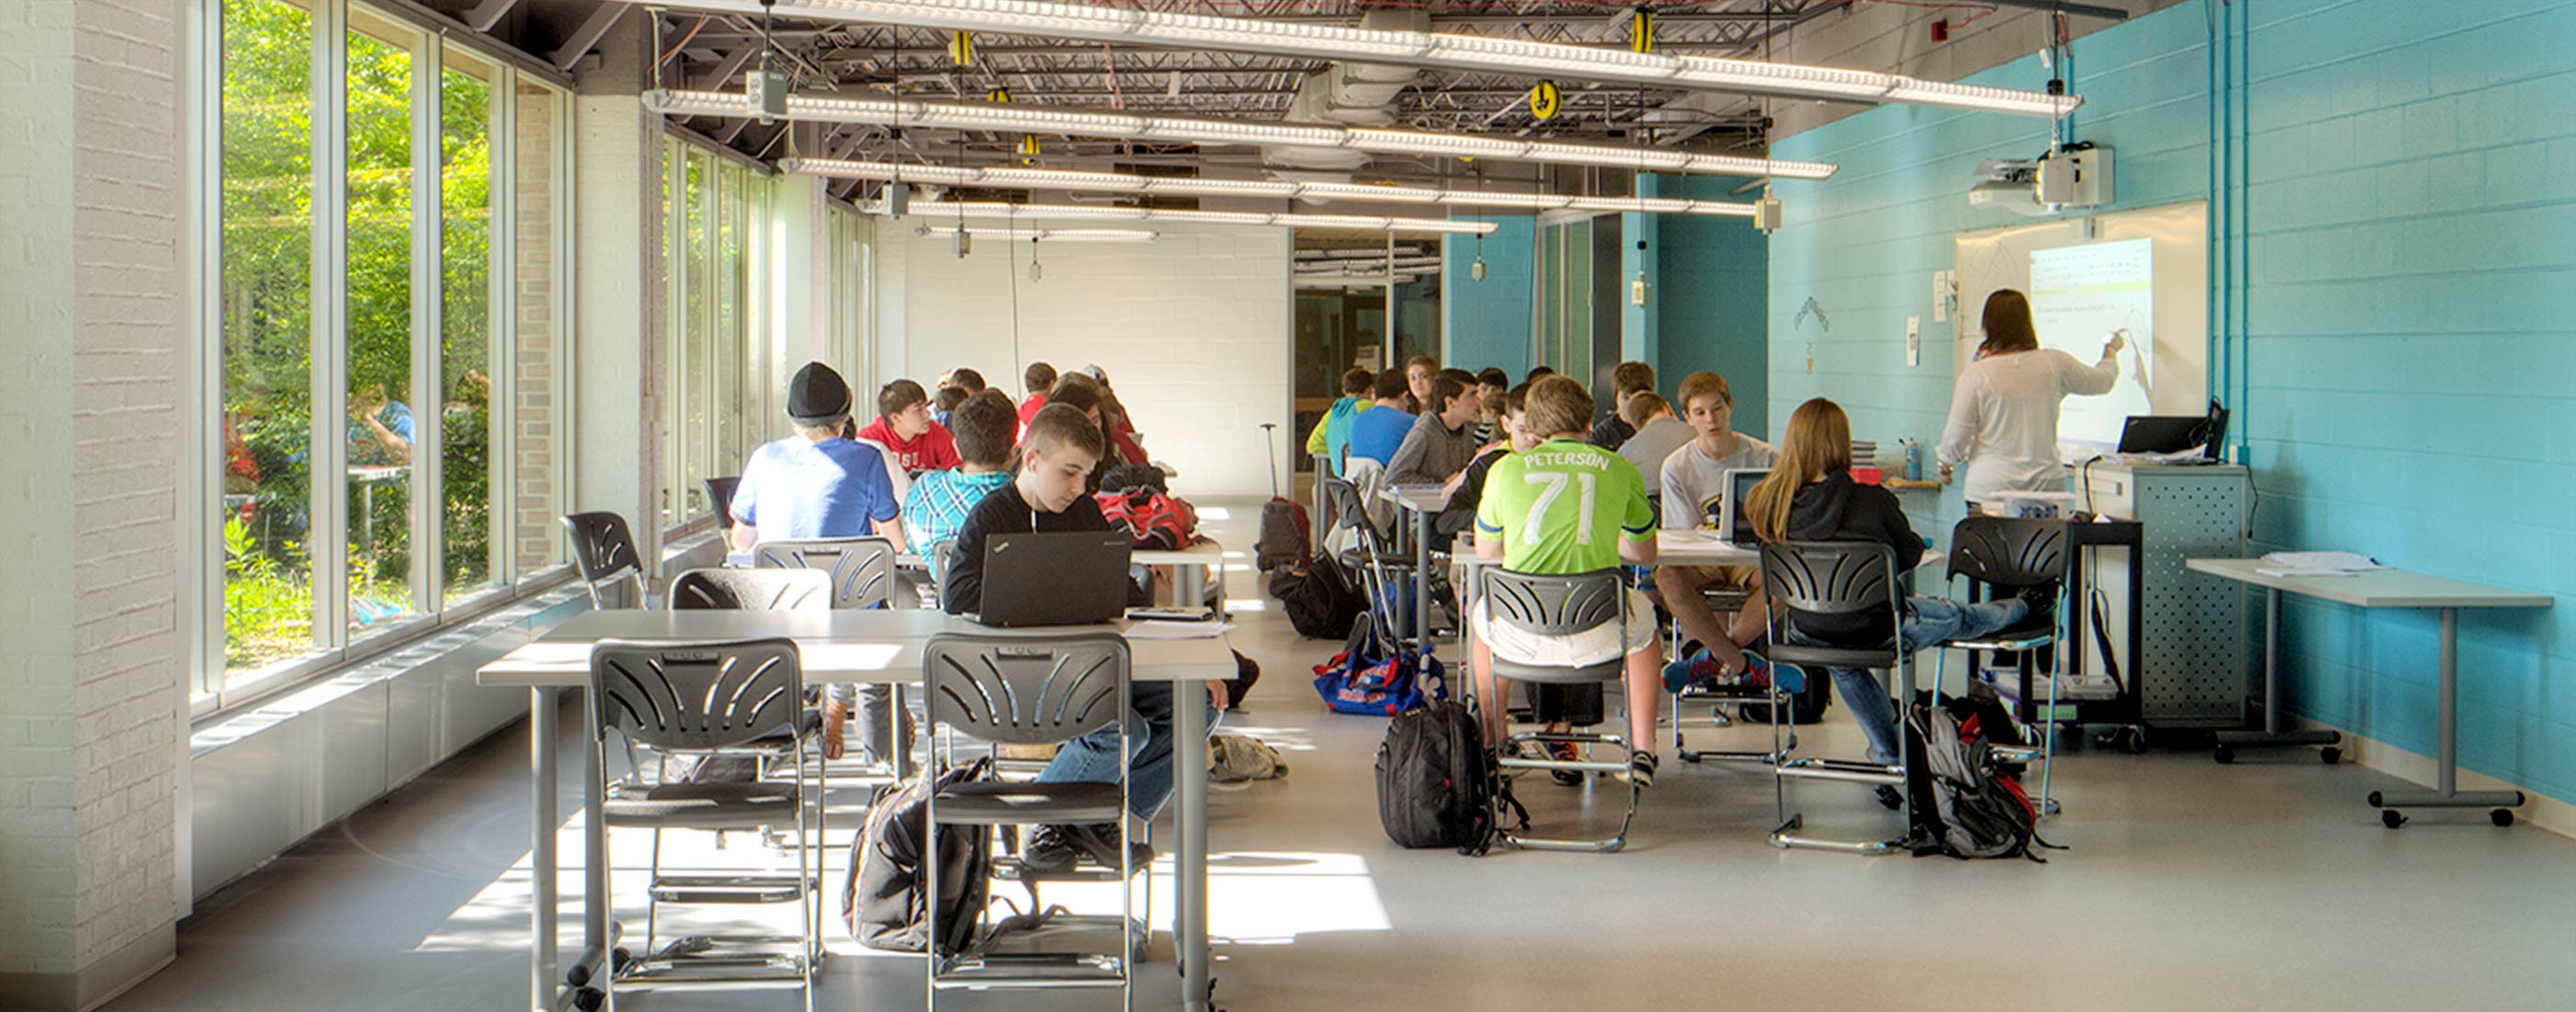 Students at Marysville STEM Early College High School benefit from natural daylight for transparency and connectivity.